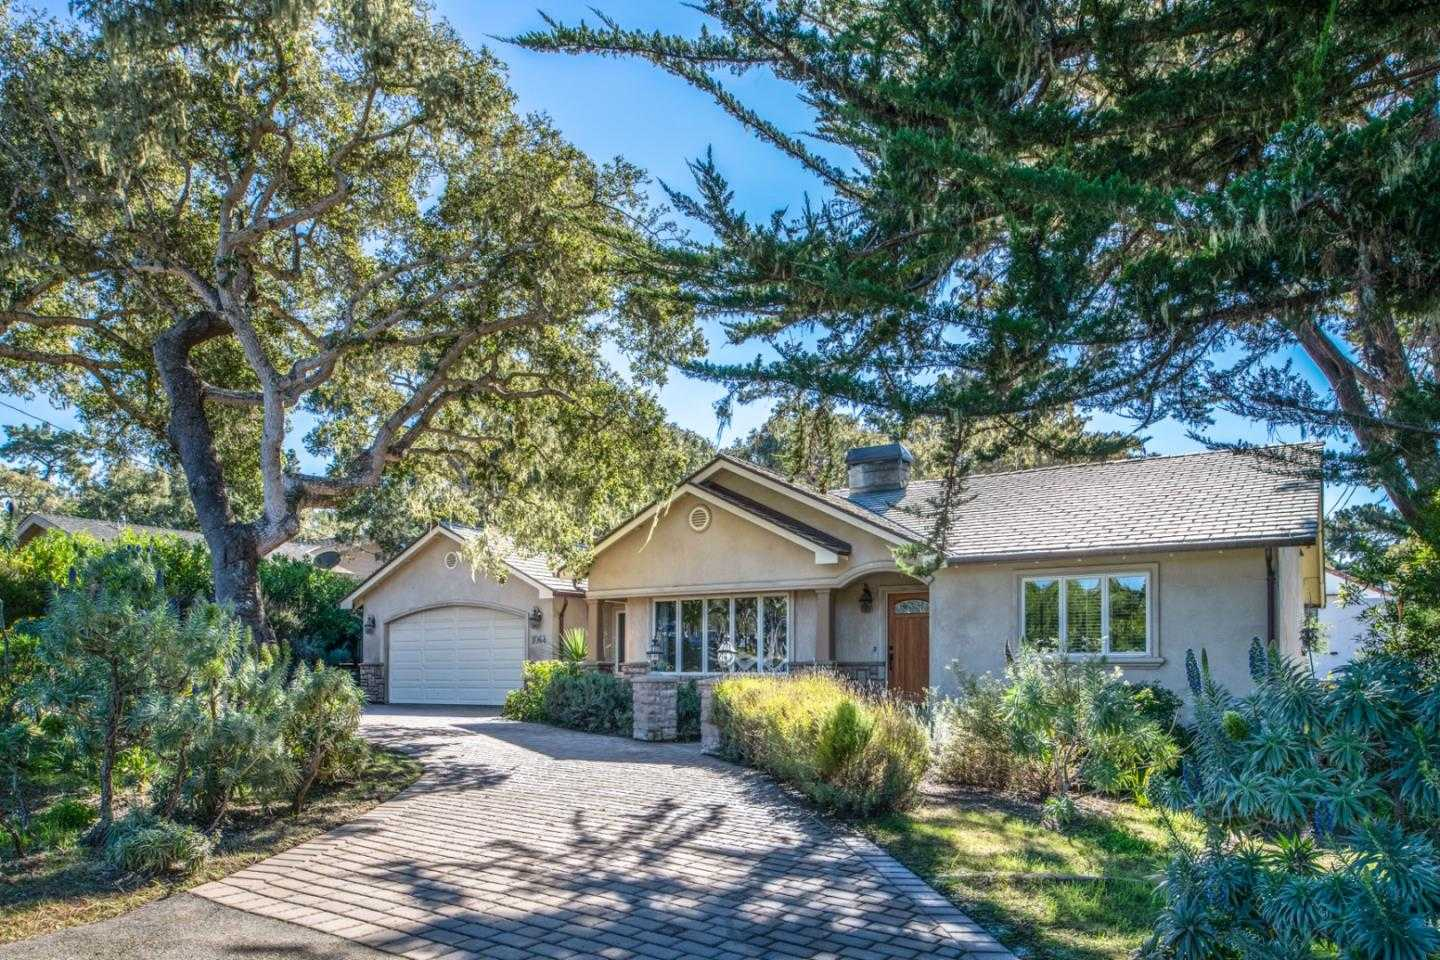 $1,795,000 - 4Br/3Ba -  for Sale in Pebble Beach